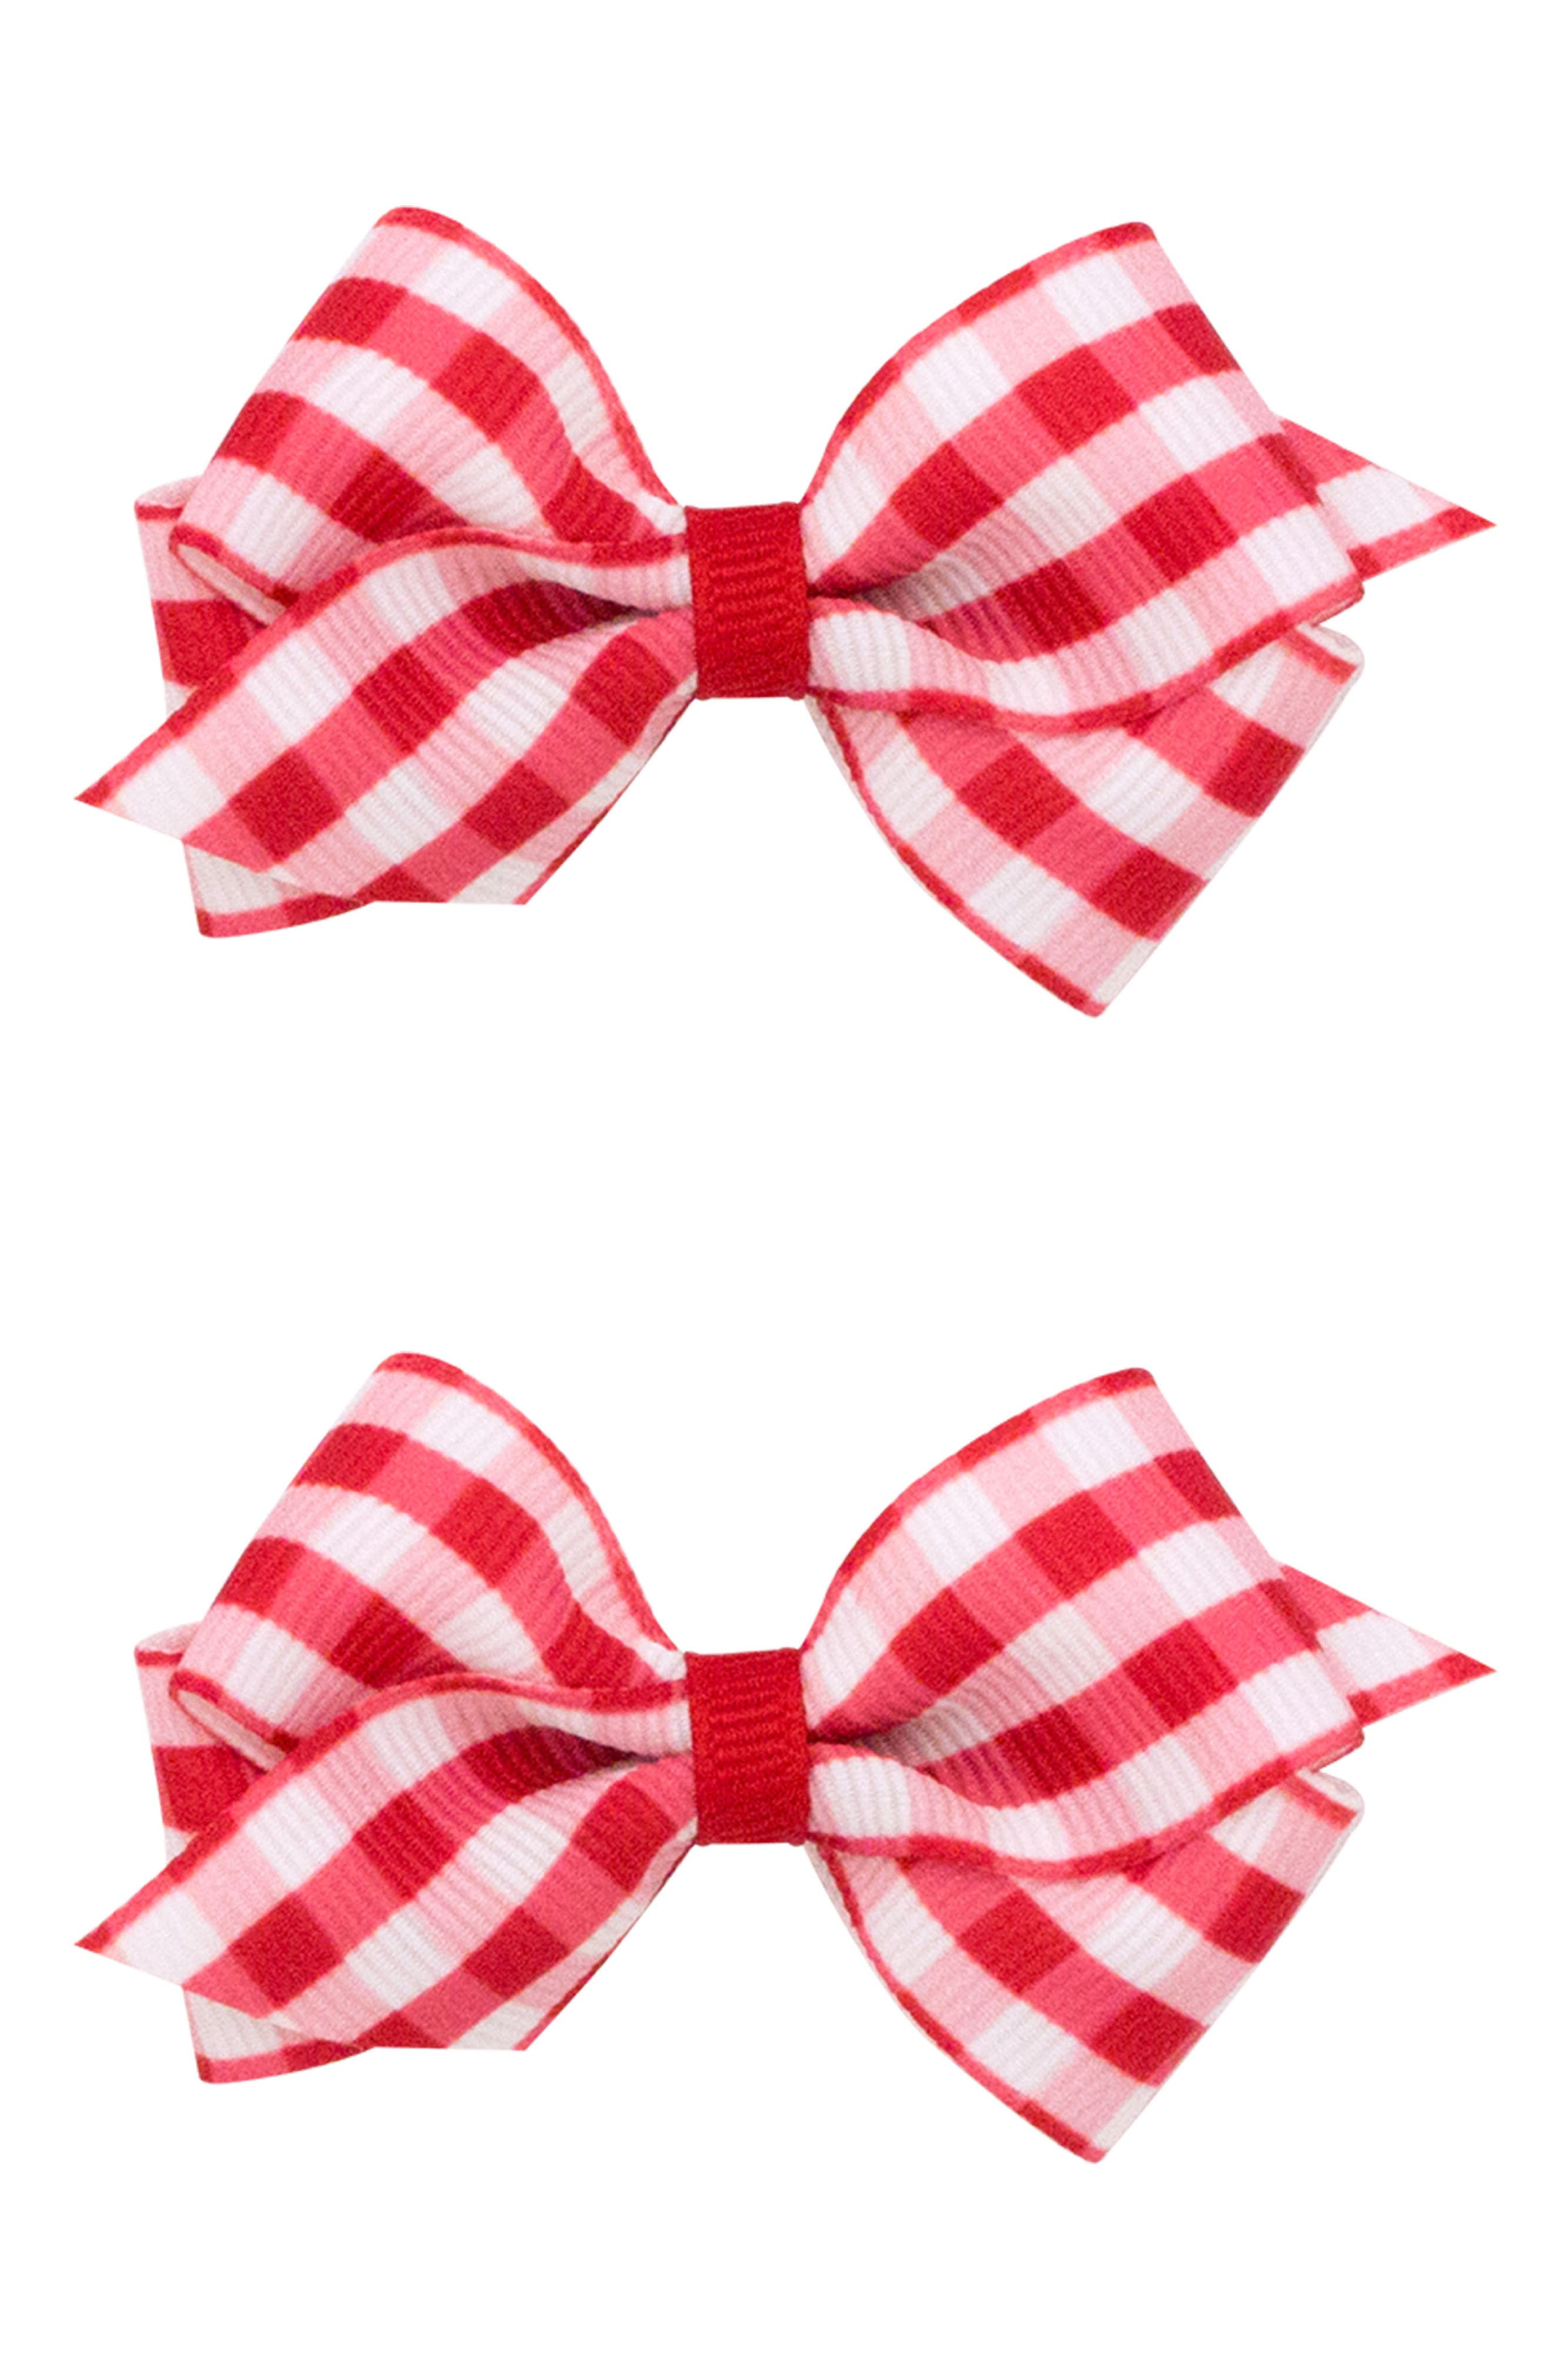 2-Pack Gingham Bow Clips,                         Main,                         color, Red